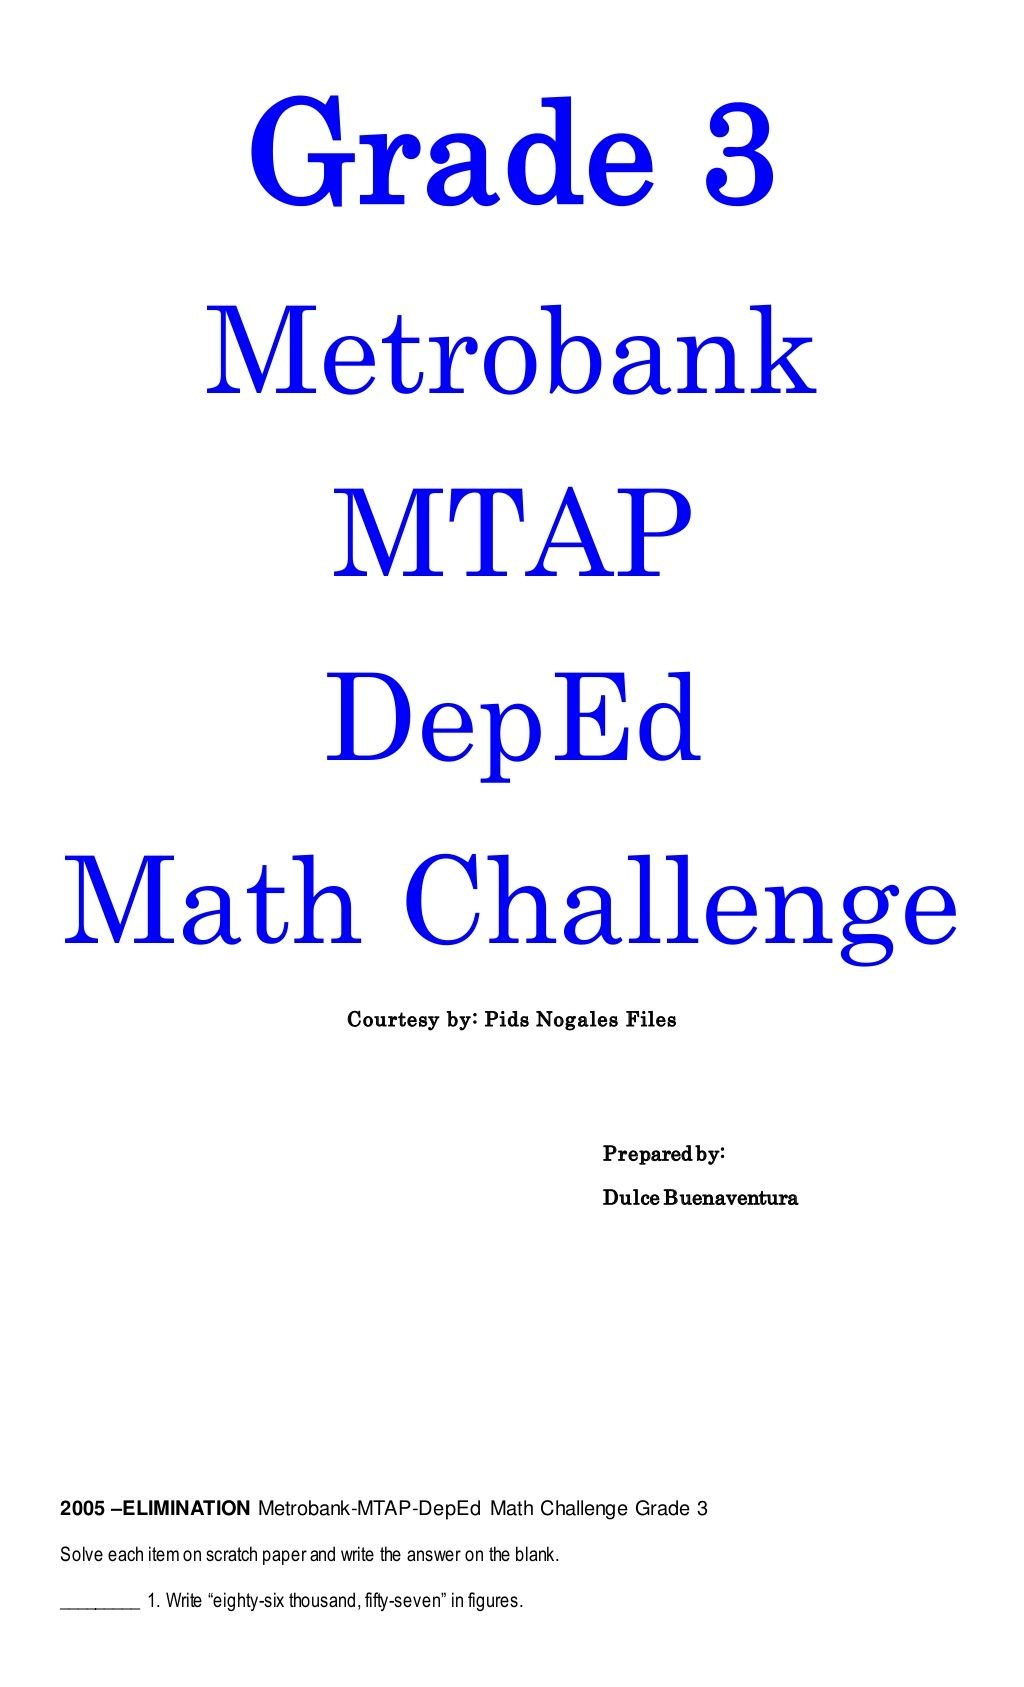 Grade 3 Metrobank Mtap Deped Math Challenge Courtesy By